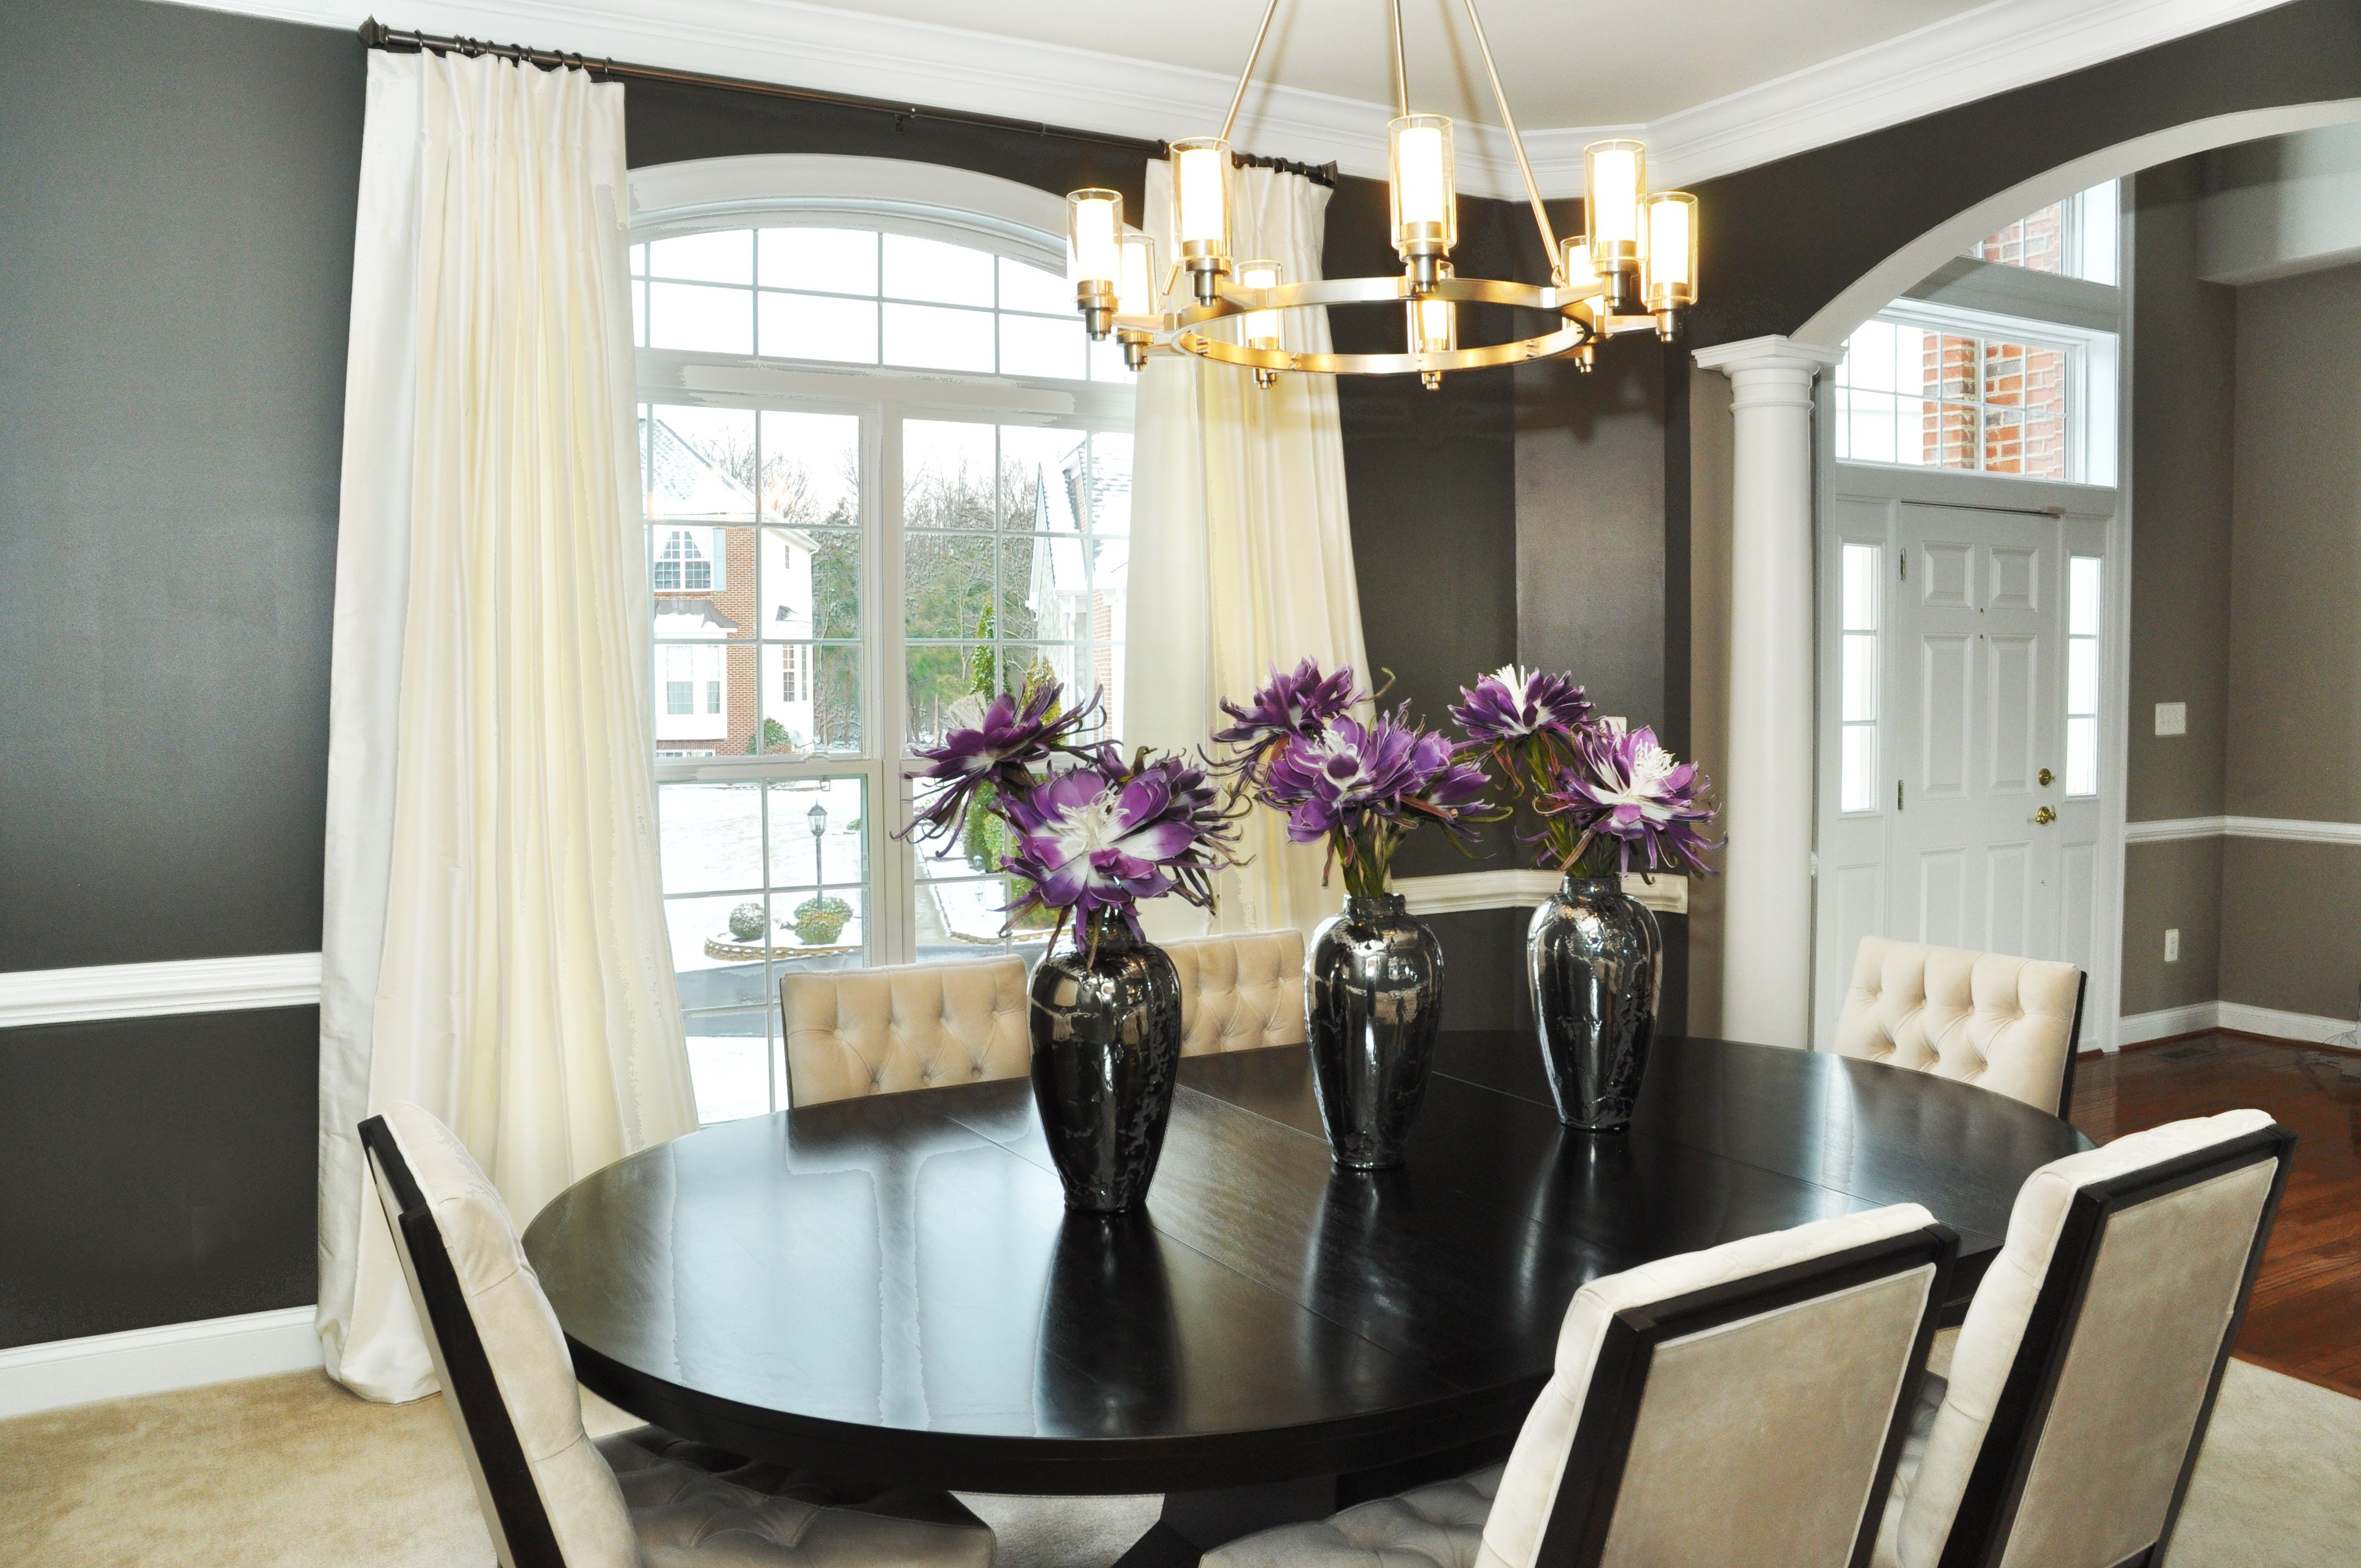 Elegant Black Wooden Oval Dining Table Feat White Tufted Dining Chairs And  White Wall Curtain Windows